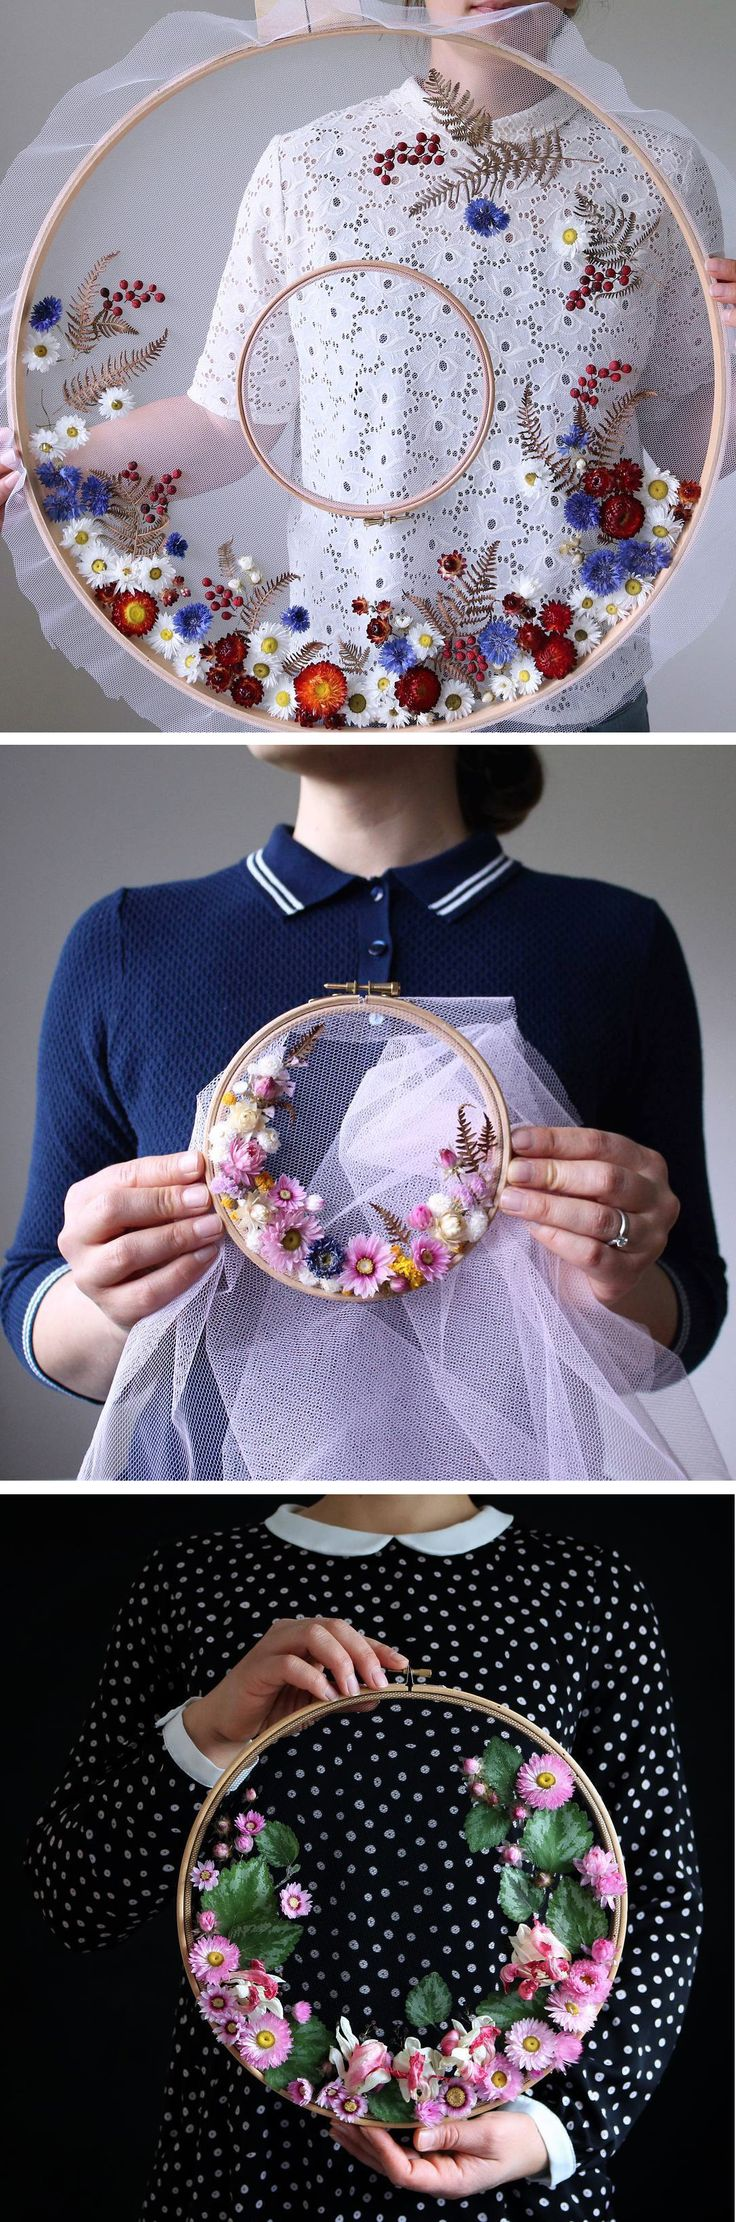 Olga Prinku real floral wreath weaves // hoop art // unconventional hoop art // flower crafts